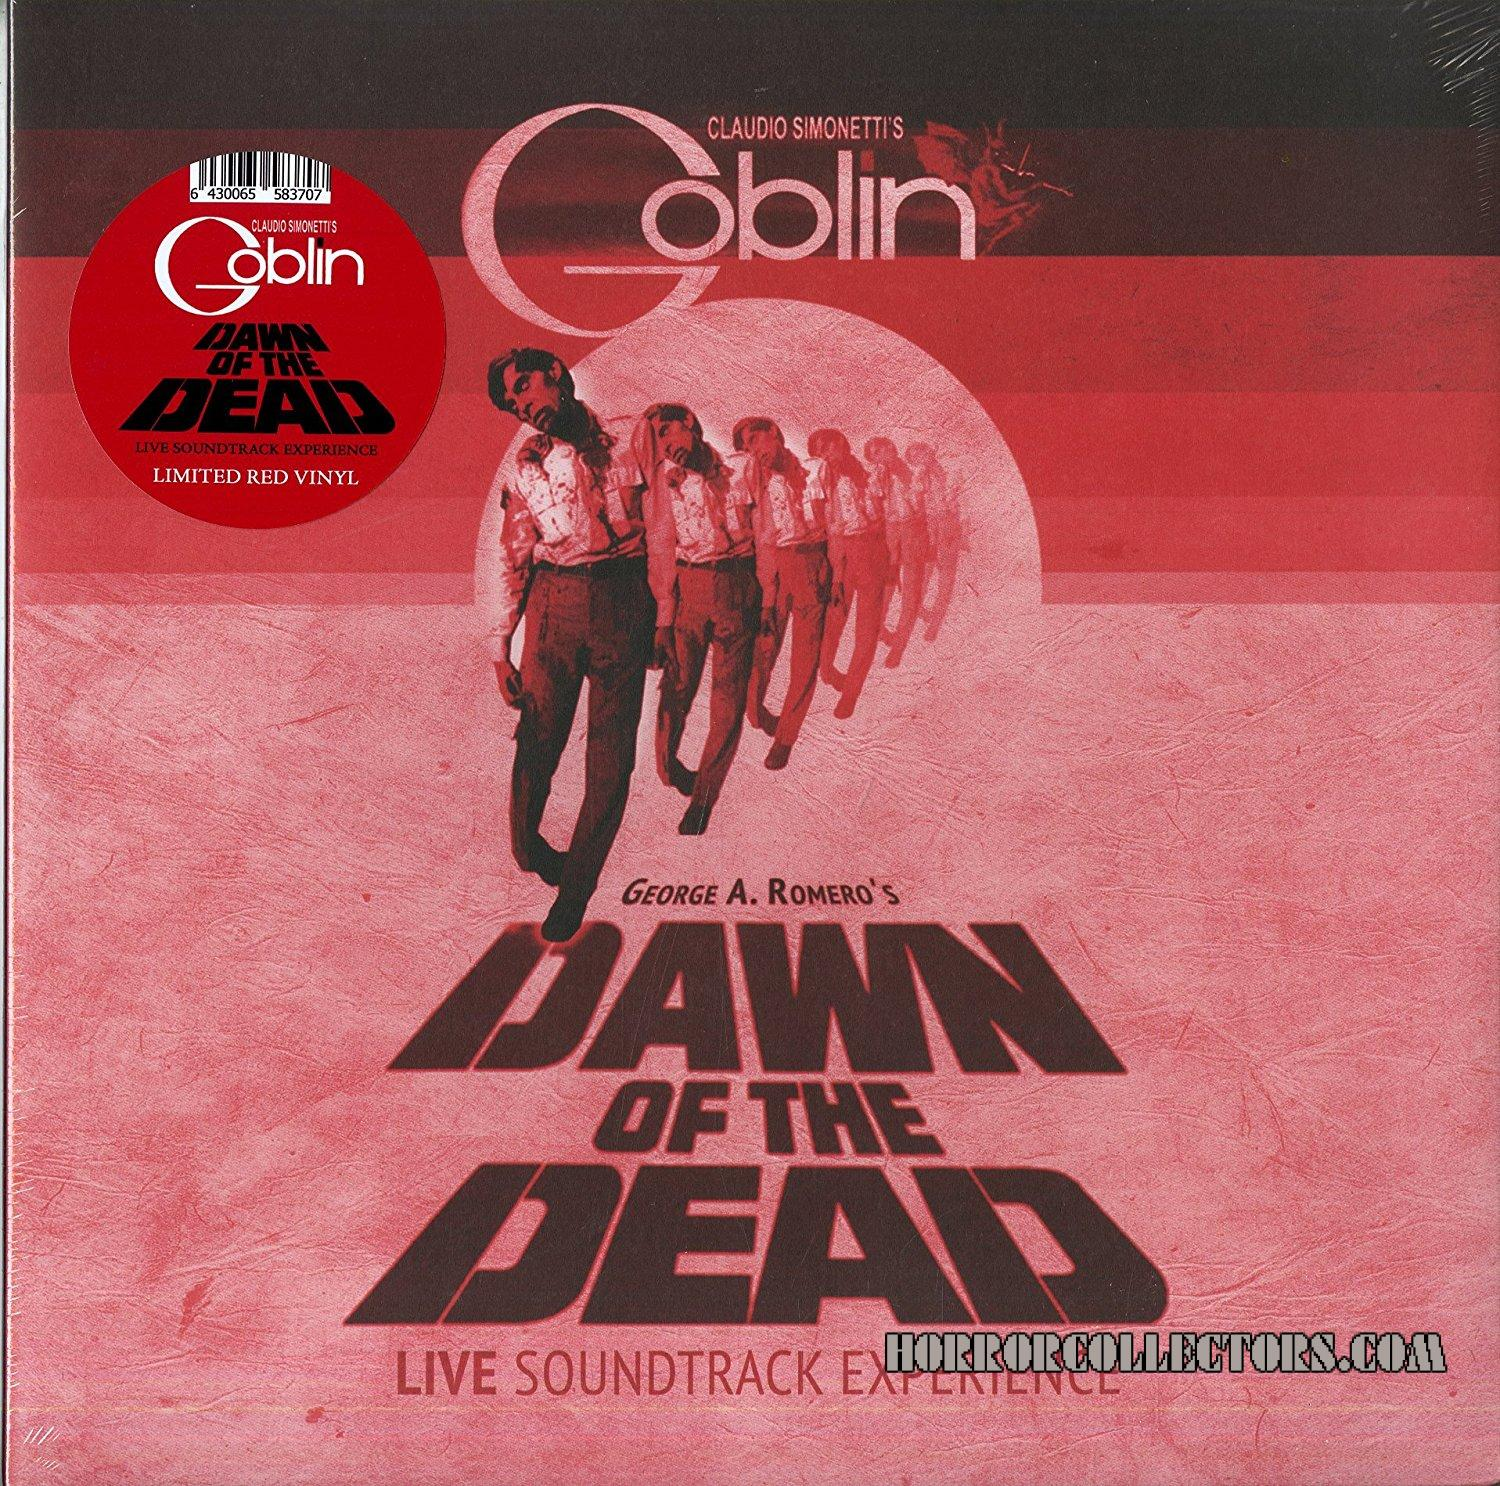 Dawn of the Dead live in Helsinki Claudio Simonettis Goblin LTD ED Red Vinyl